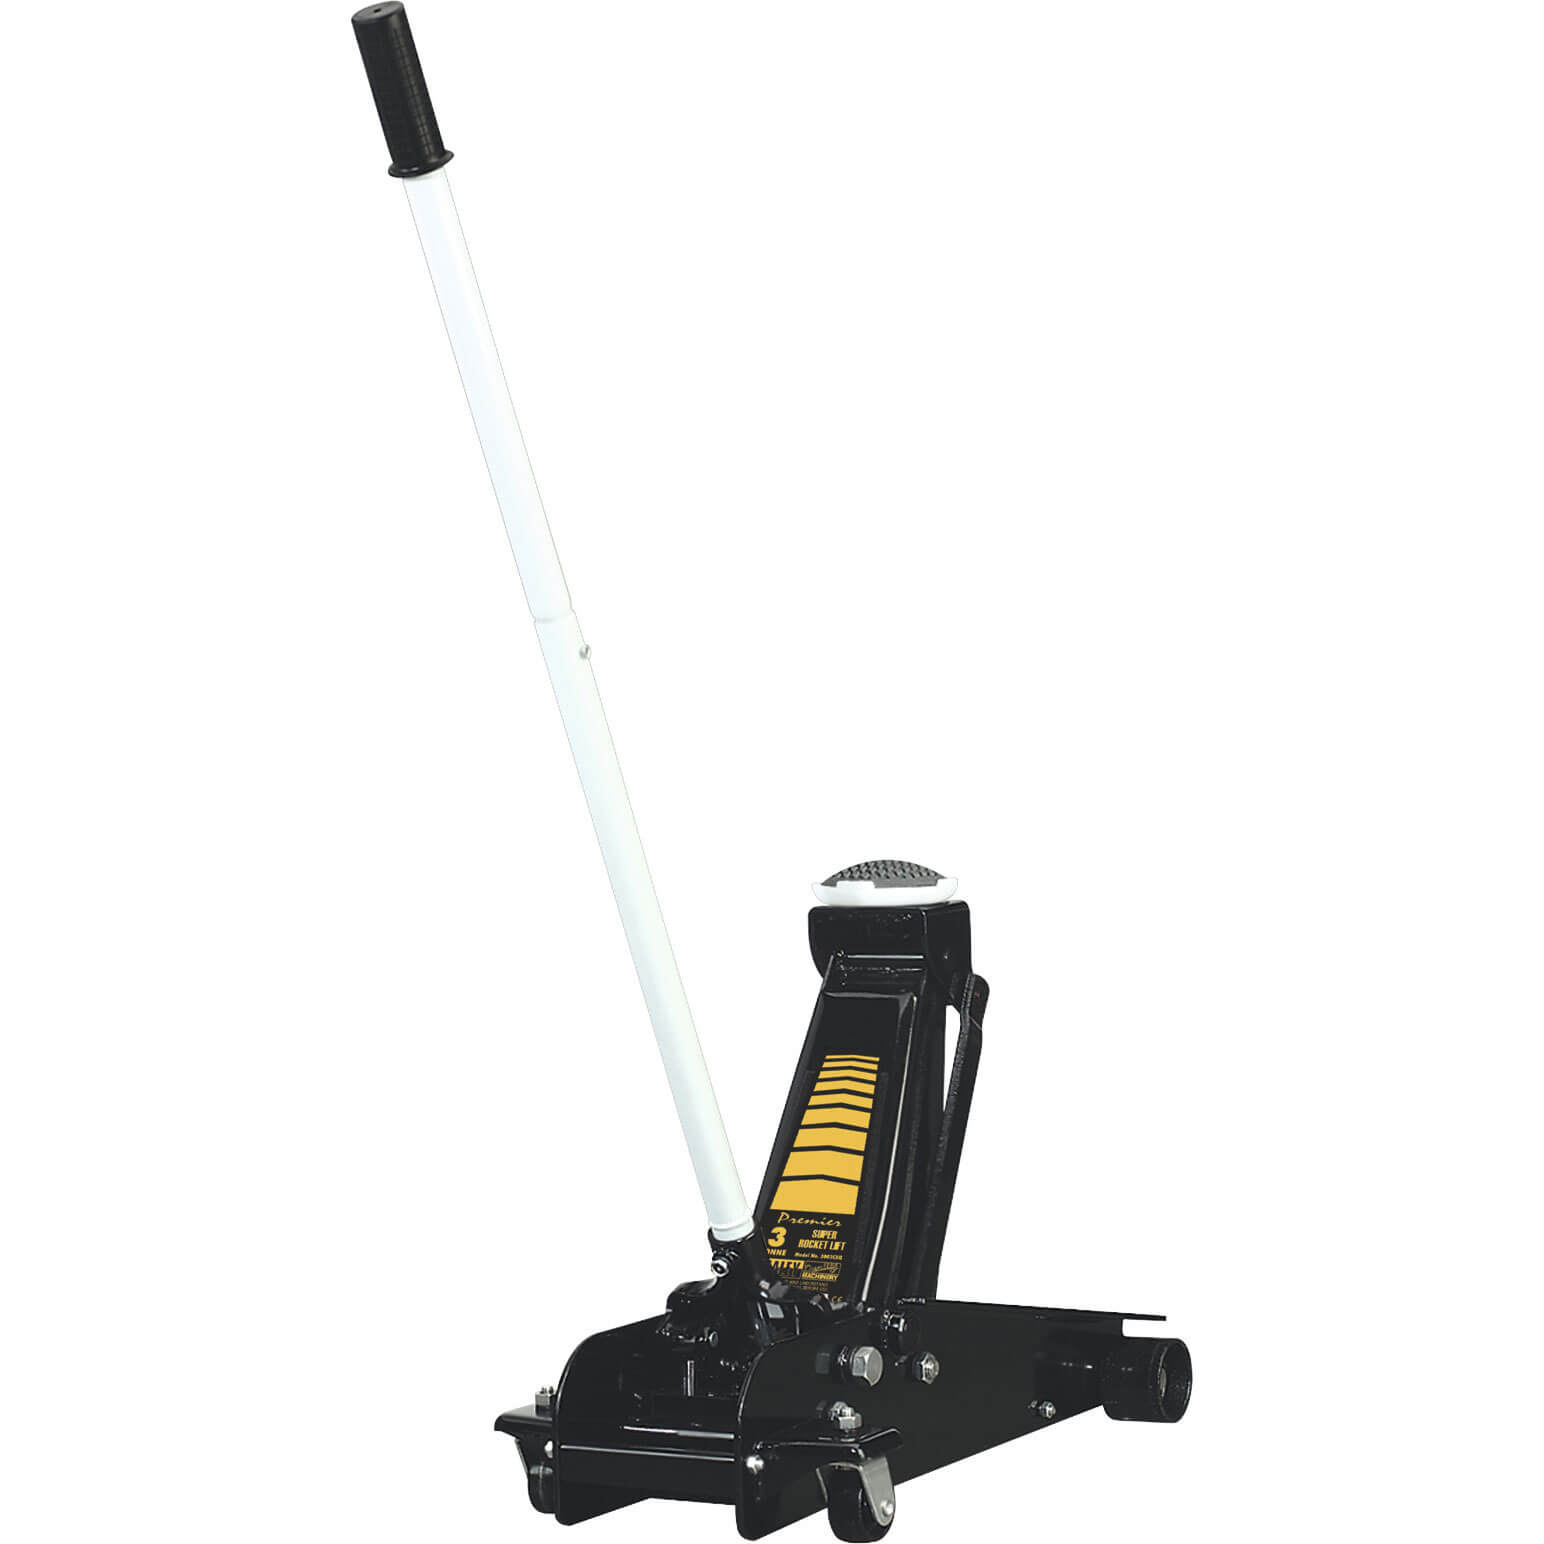 Sealey 3003CXQ Premier Super Rocket Lift Trolley Jack 3 Tonne